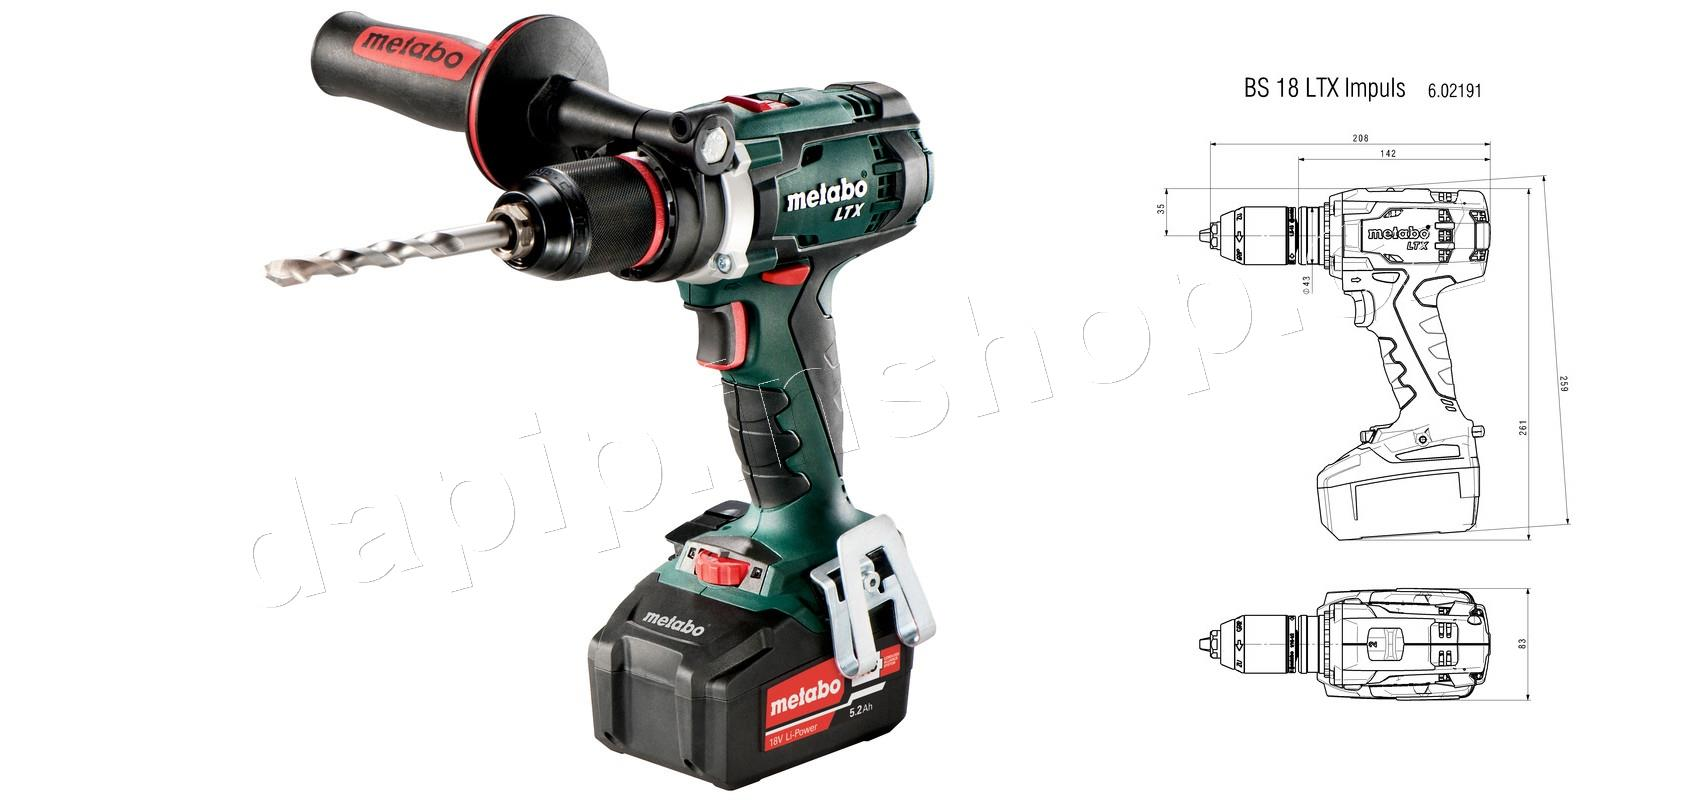 BS 18 LTX IMPULS - METABO